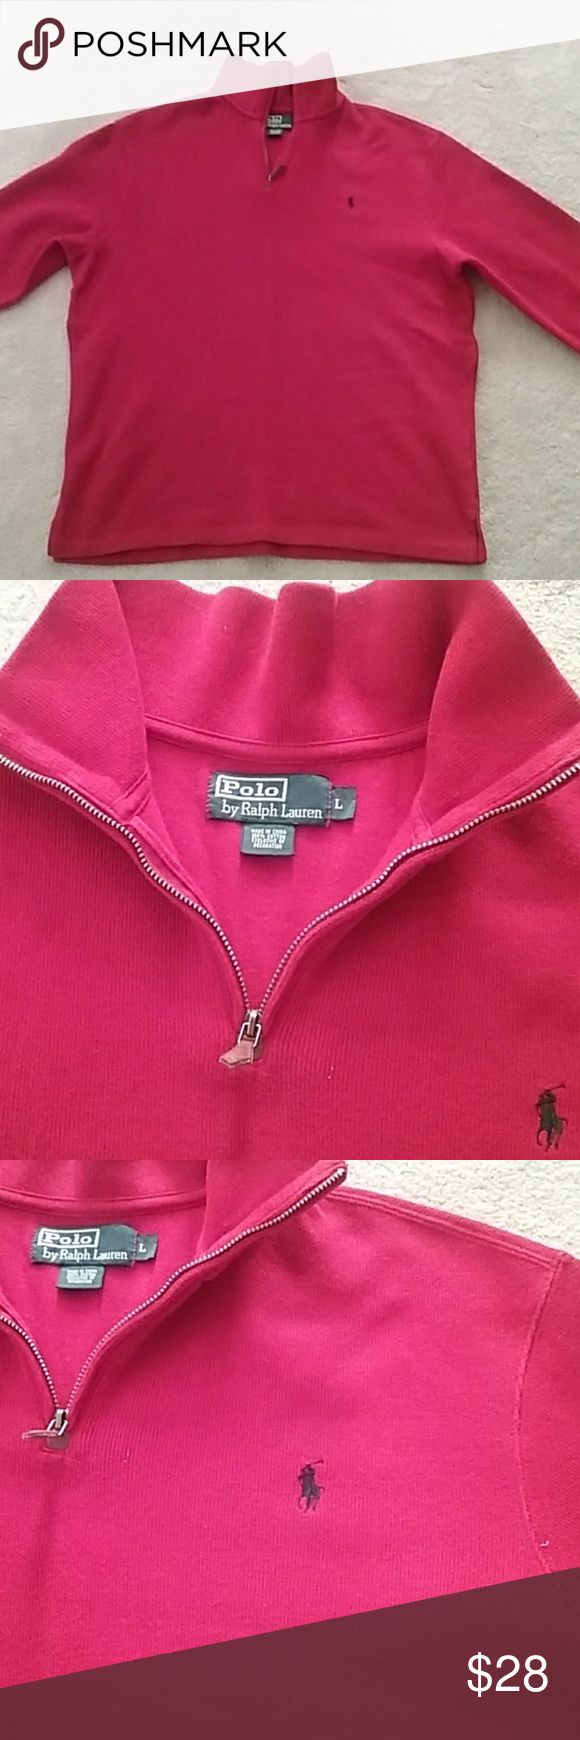 Men's Ralph Lauren half zip sweater size Large In great condition.   Only worn twice.   Size Large.   From a pet/ smoke free home.  Washed in organic laundry detergent Ralph Lauren Sweaters